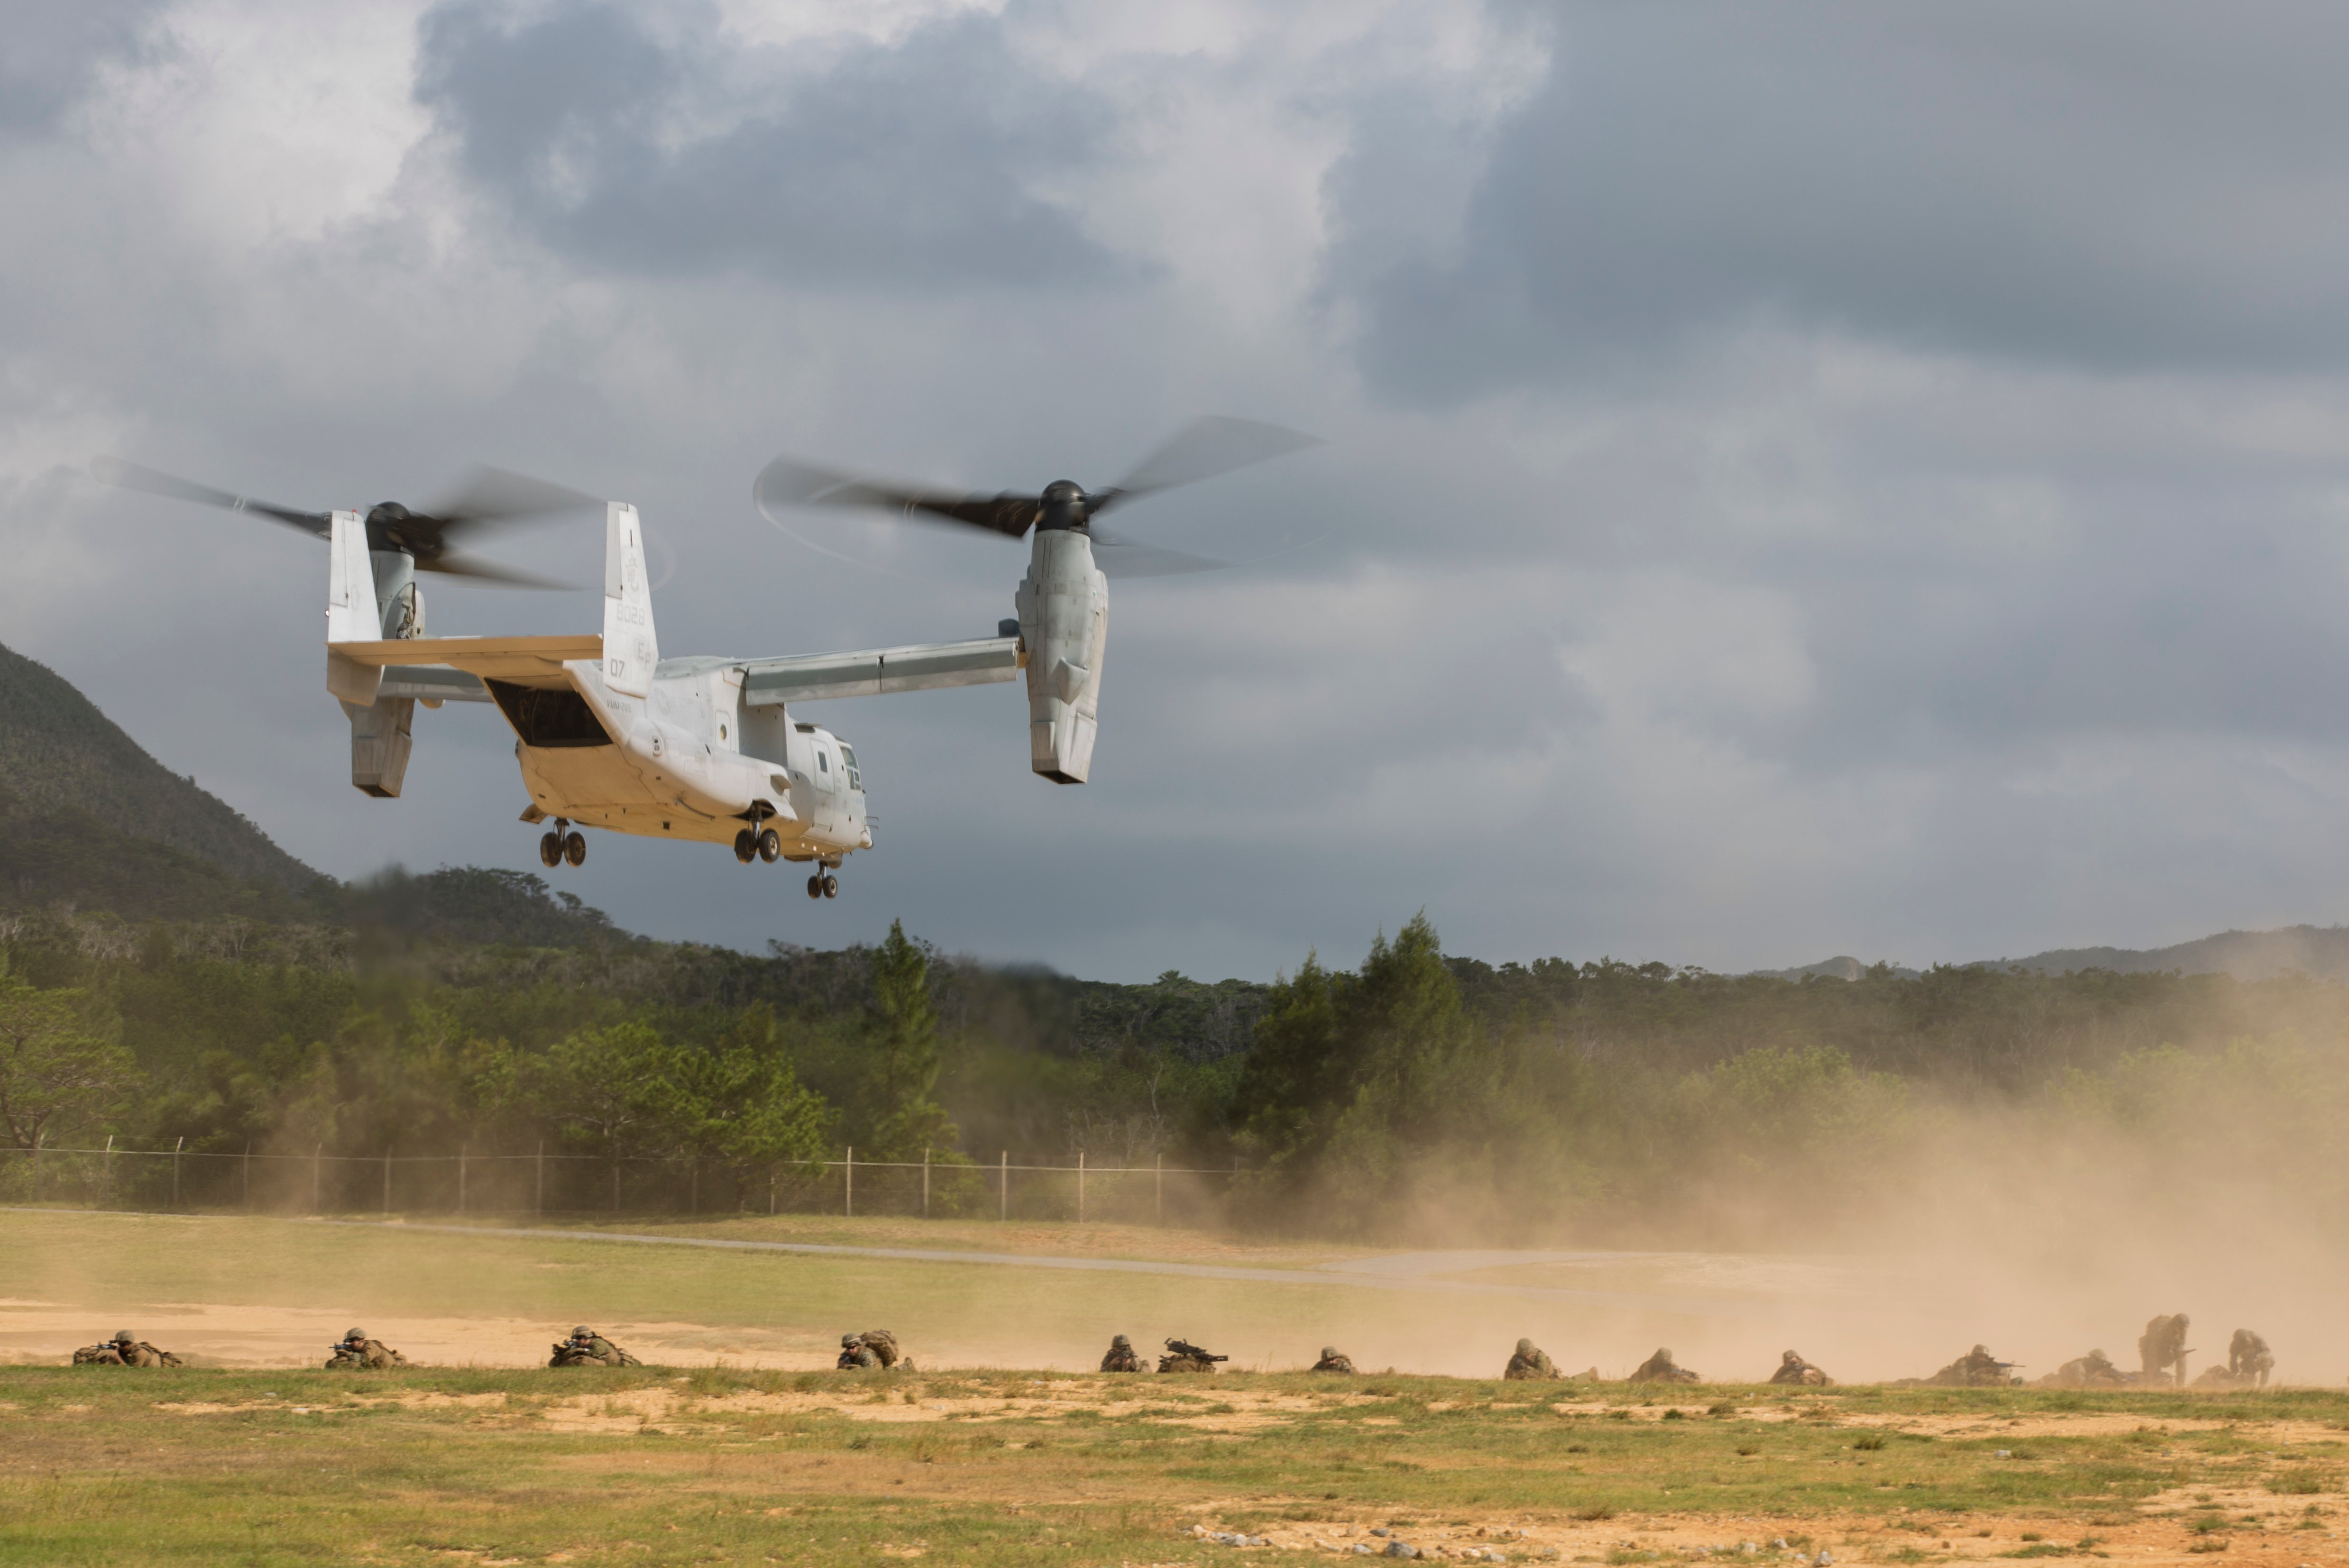 U.S. Marines assigned with 3rd Battalion, 3rd Marine Regiment, which is forward deployed from Kaneohe Bay, Hawaii provide security as an MV-22B Osprey tiltrotor aircraft from Marine Medium Tiltrotor Squadron 265, Marine Aircraft Group 36, 1st Marine Aircraft Wing, flies overhead during an air assault drill as part of Blue Chromite 2017, Okinawa, Japan, November 1, 2016. Blue Chromite is a U.S. – only exercise which strengthens the Navy-Marine Corps expeditionary, amphibious rapid-response capabilities based in Okinawa and the greater Indo-Asia-Pacific region. (U.S. Marine Corps photo by MCIPAC Combat Camera Lance Cpl. Tiana Boyd)